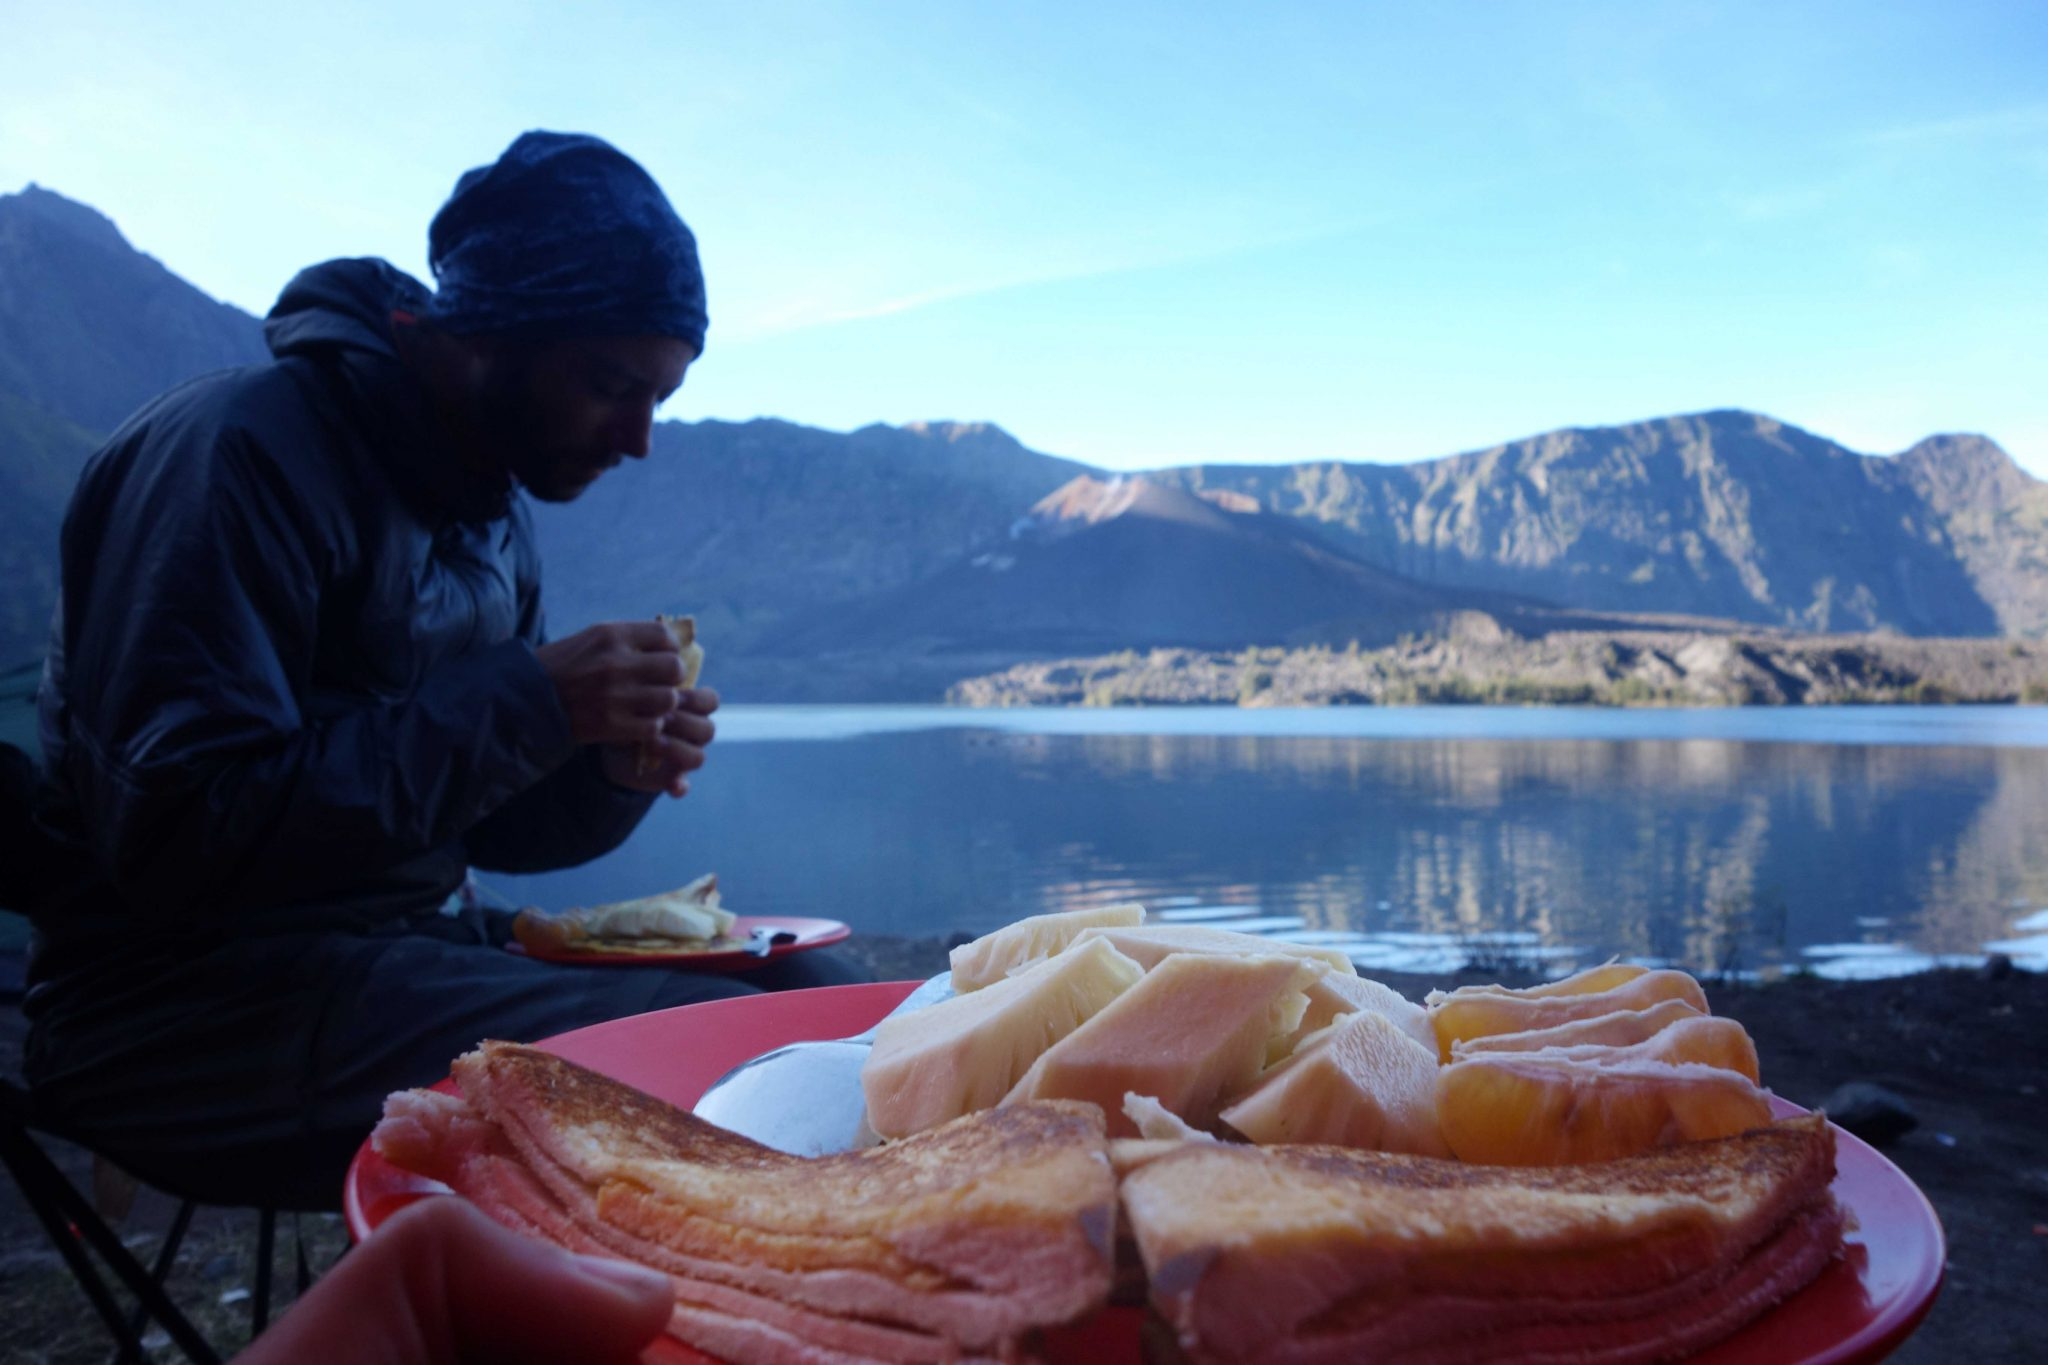 Breakfast in Segara anak lake